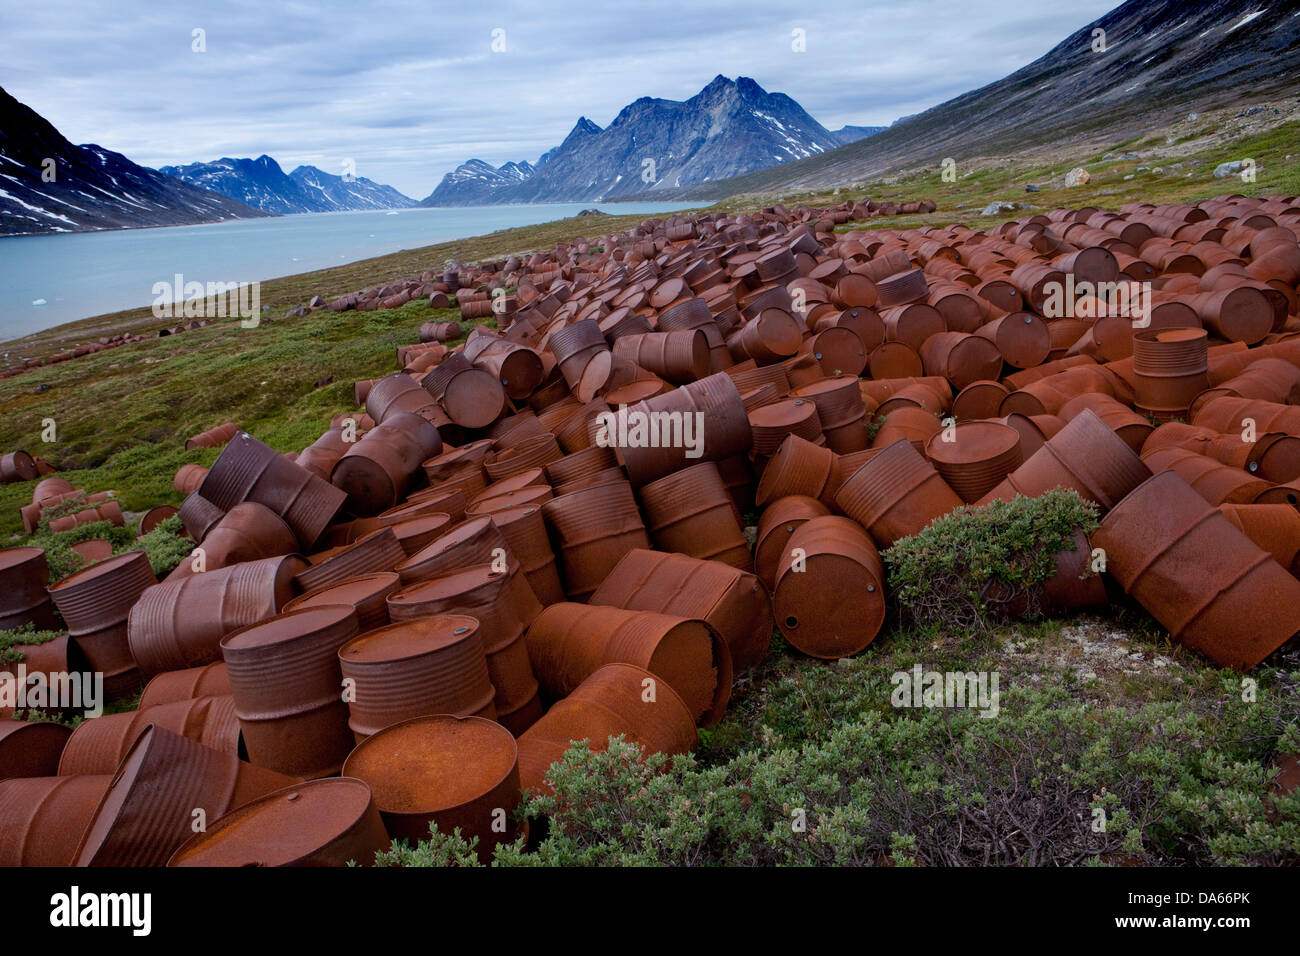 US base, cousin, Blue East, base, military base, 2 world war, Greenland, East Greenland, rust, grate, environmental, - Stock Image